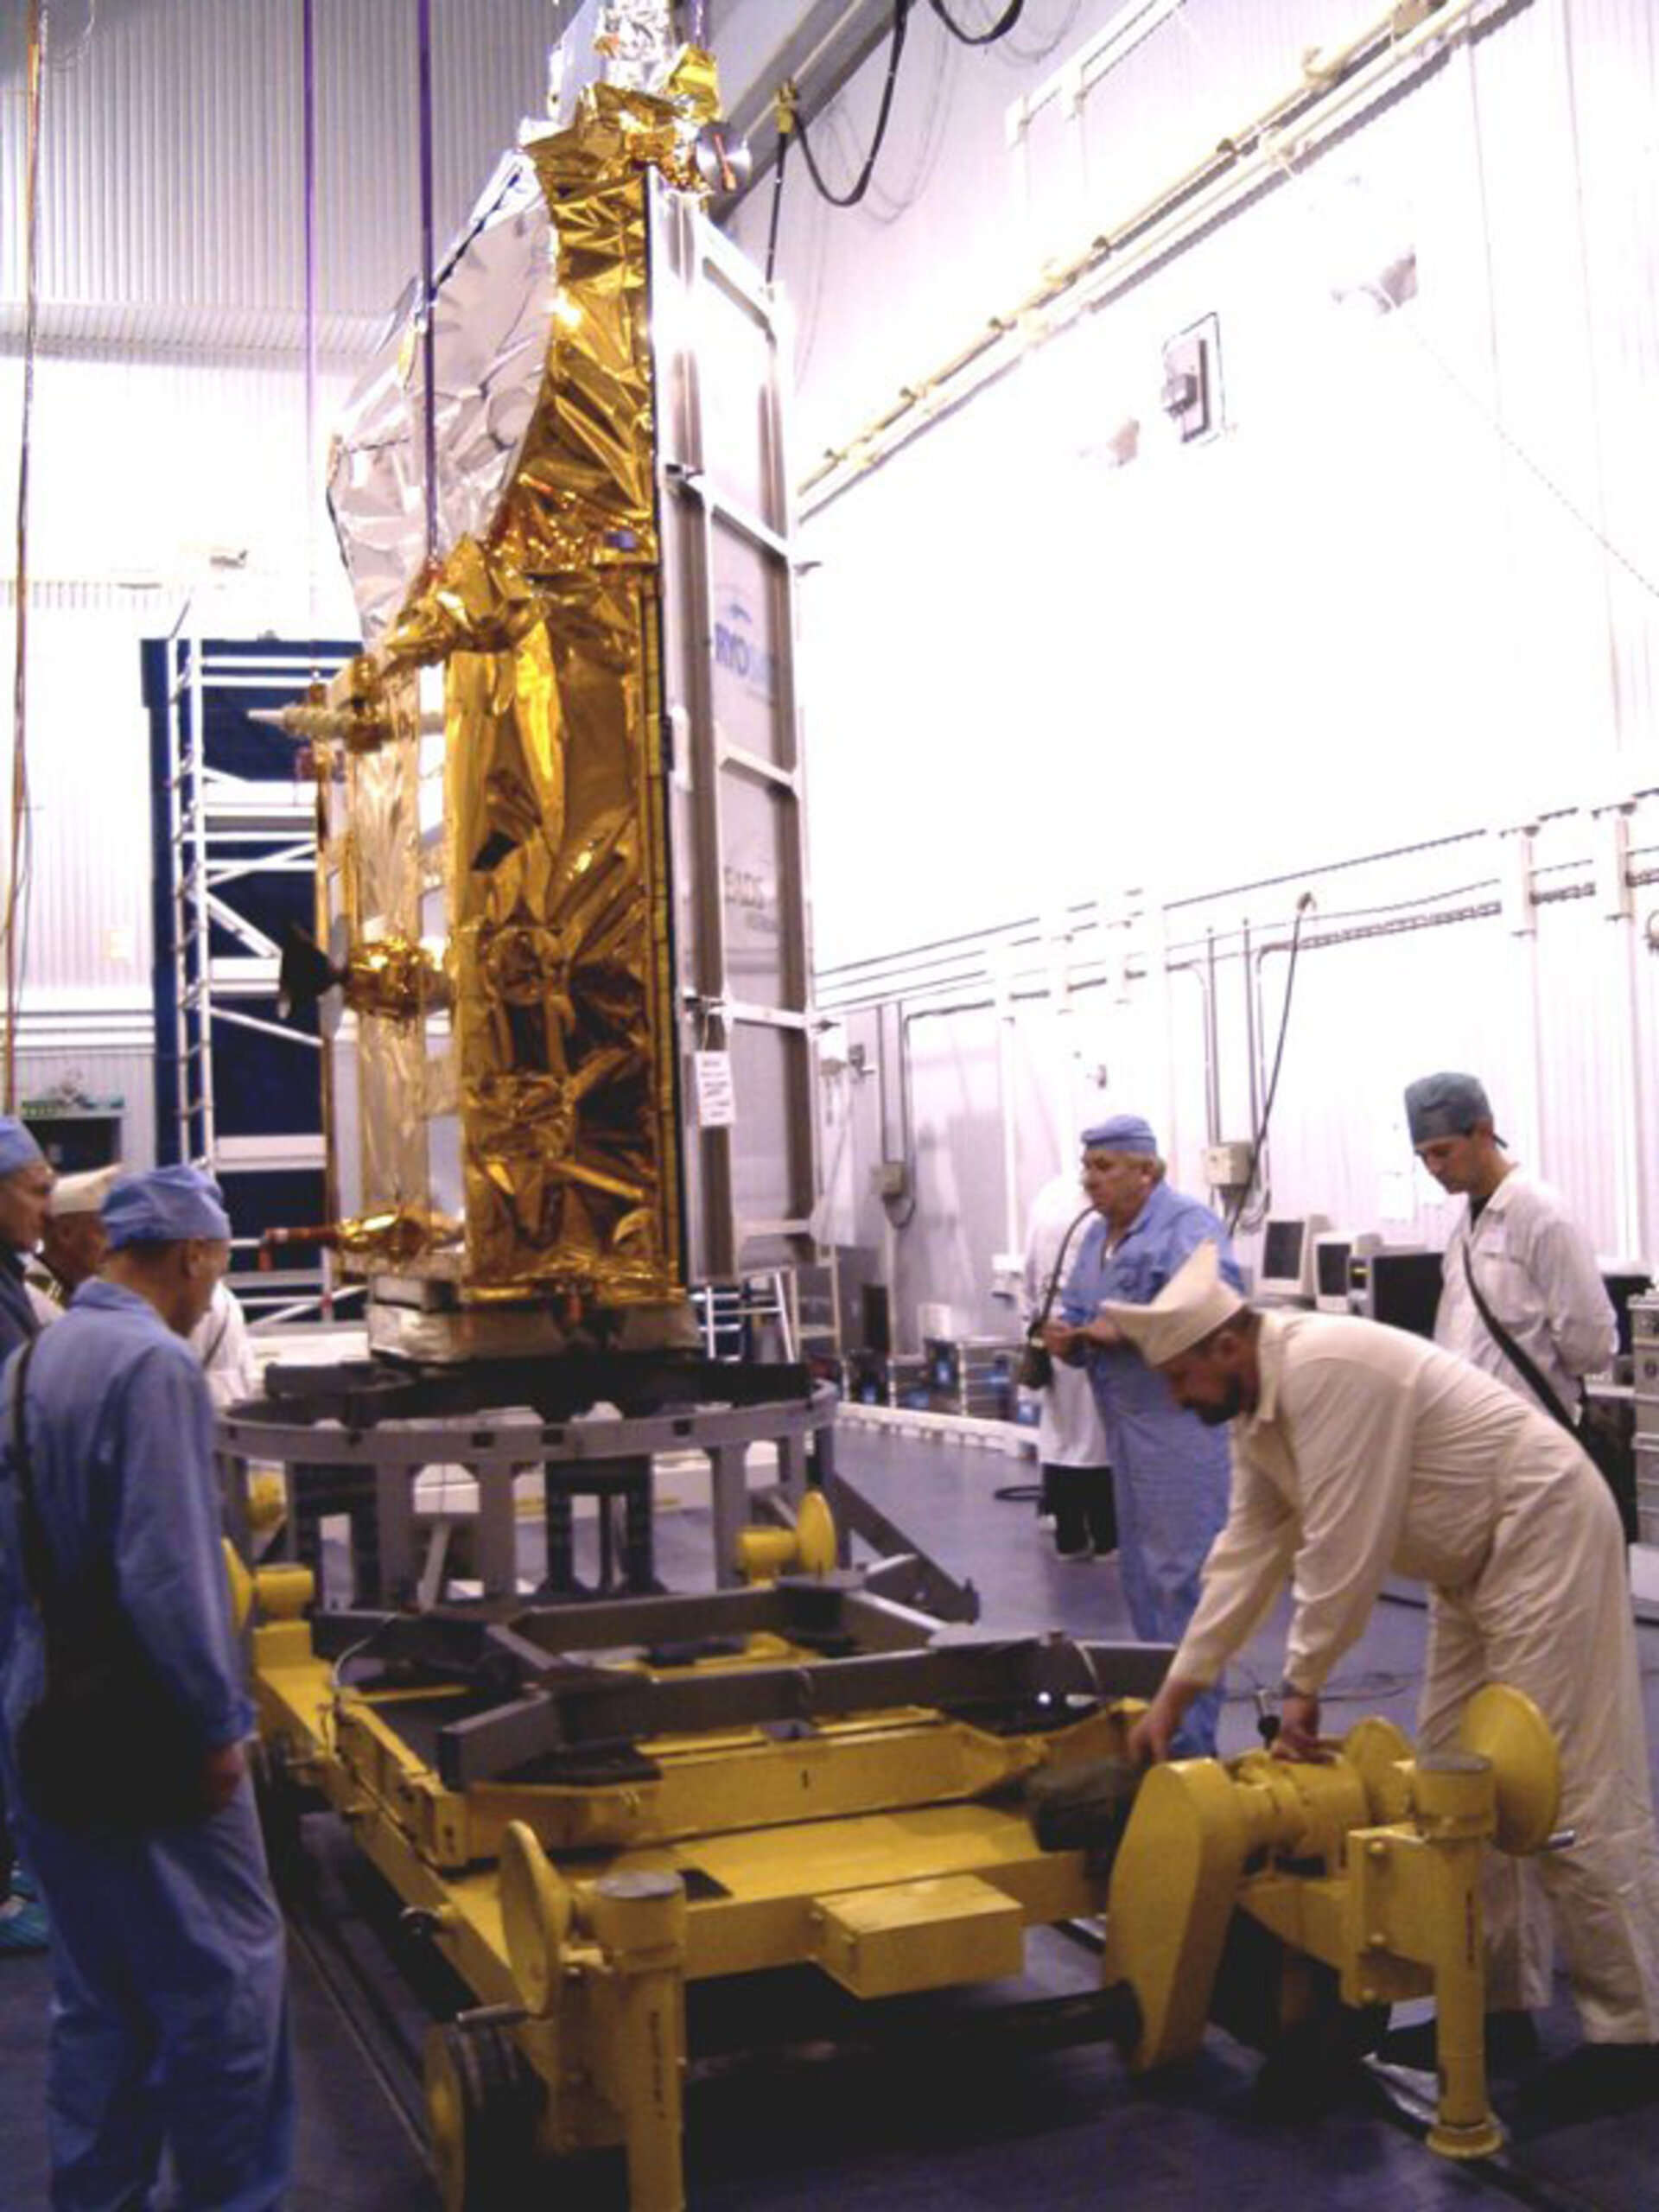 CryoSat is rolled to clean room B